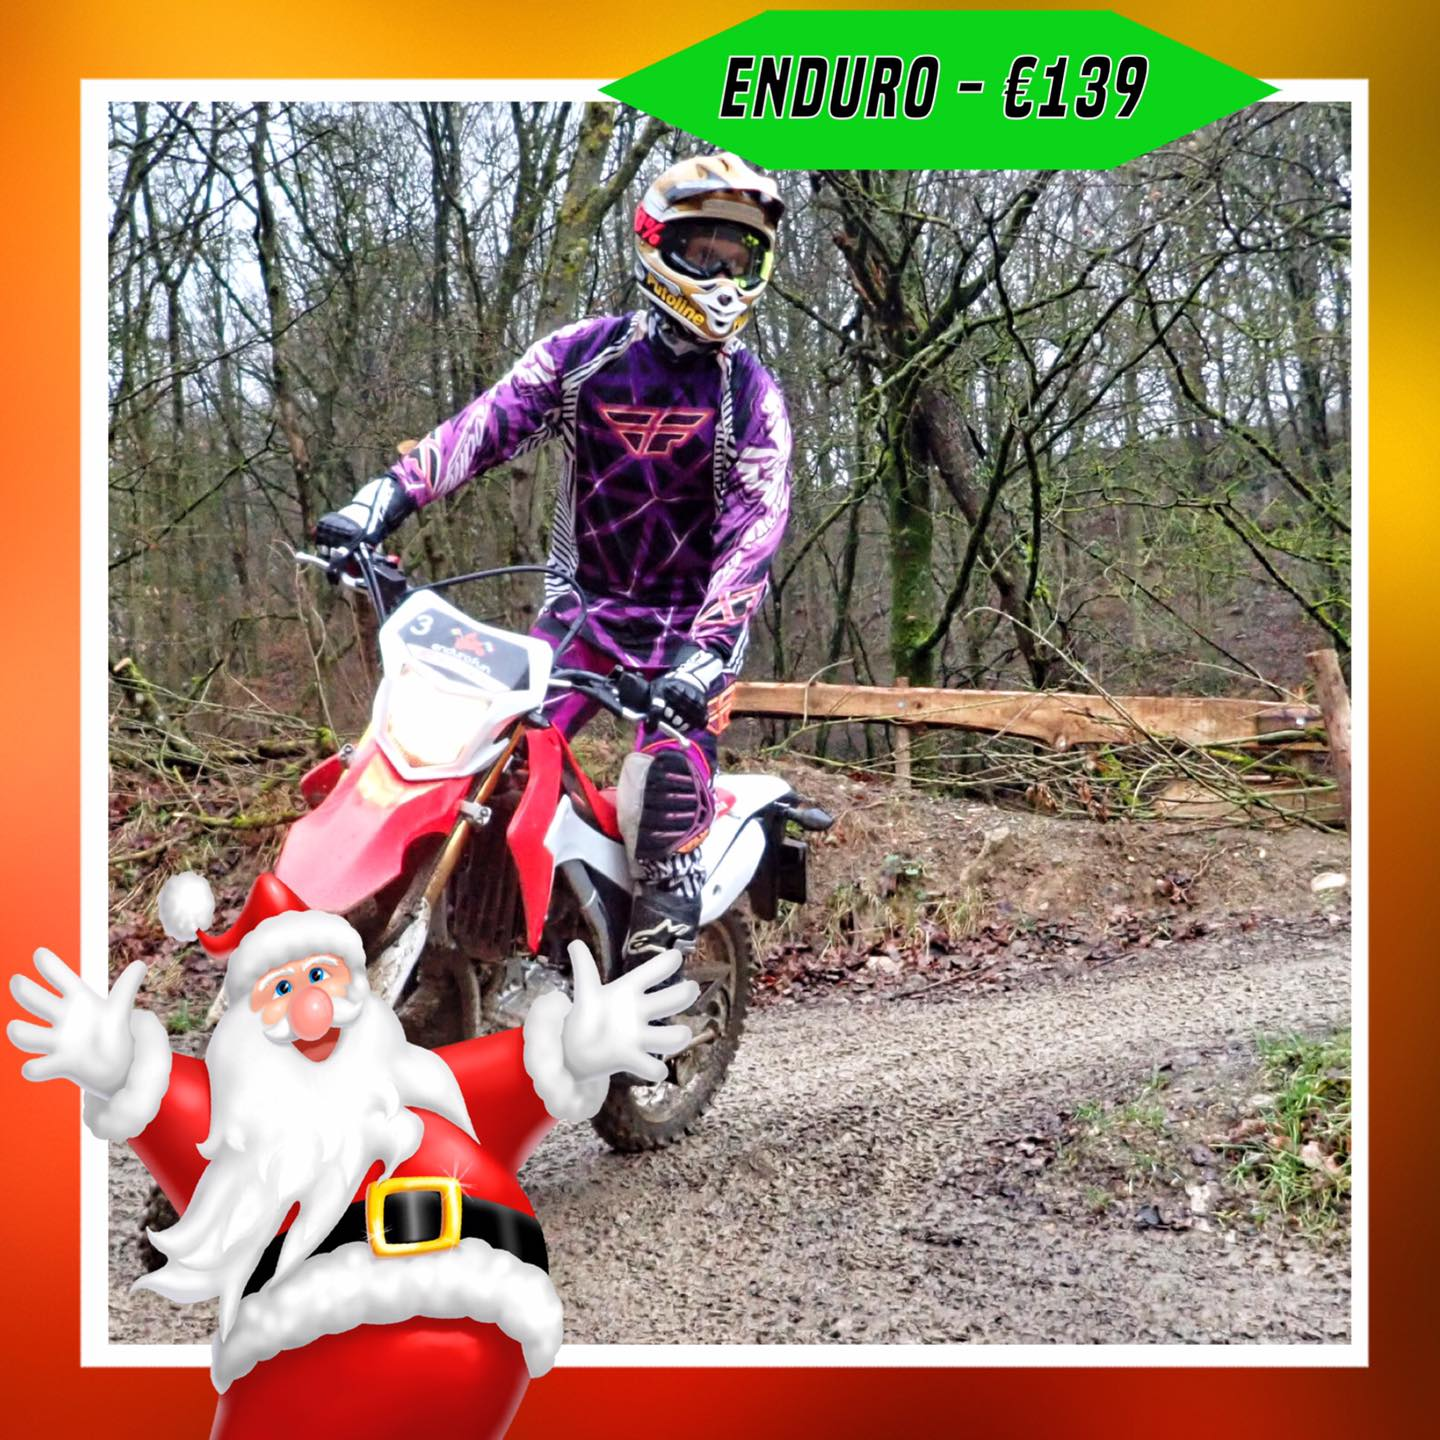 Kerst-initiaties Bilstain Endurofun 9